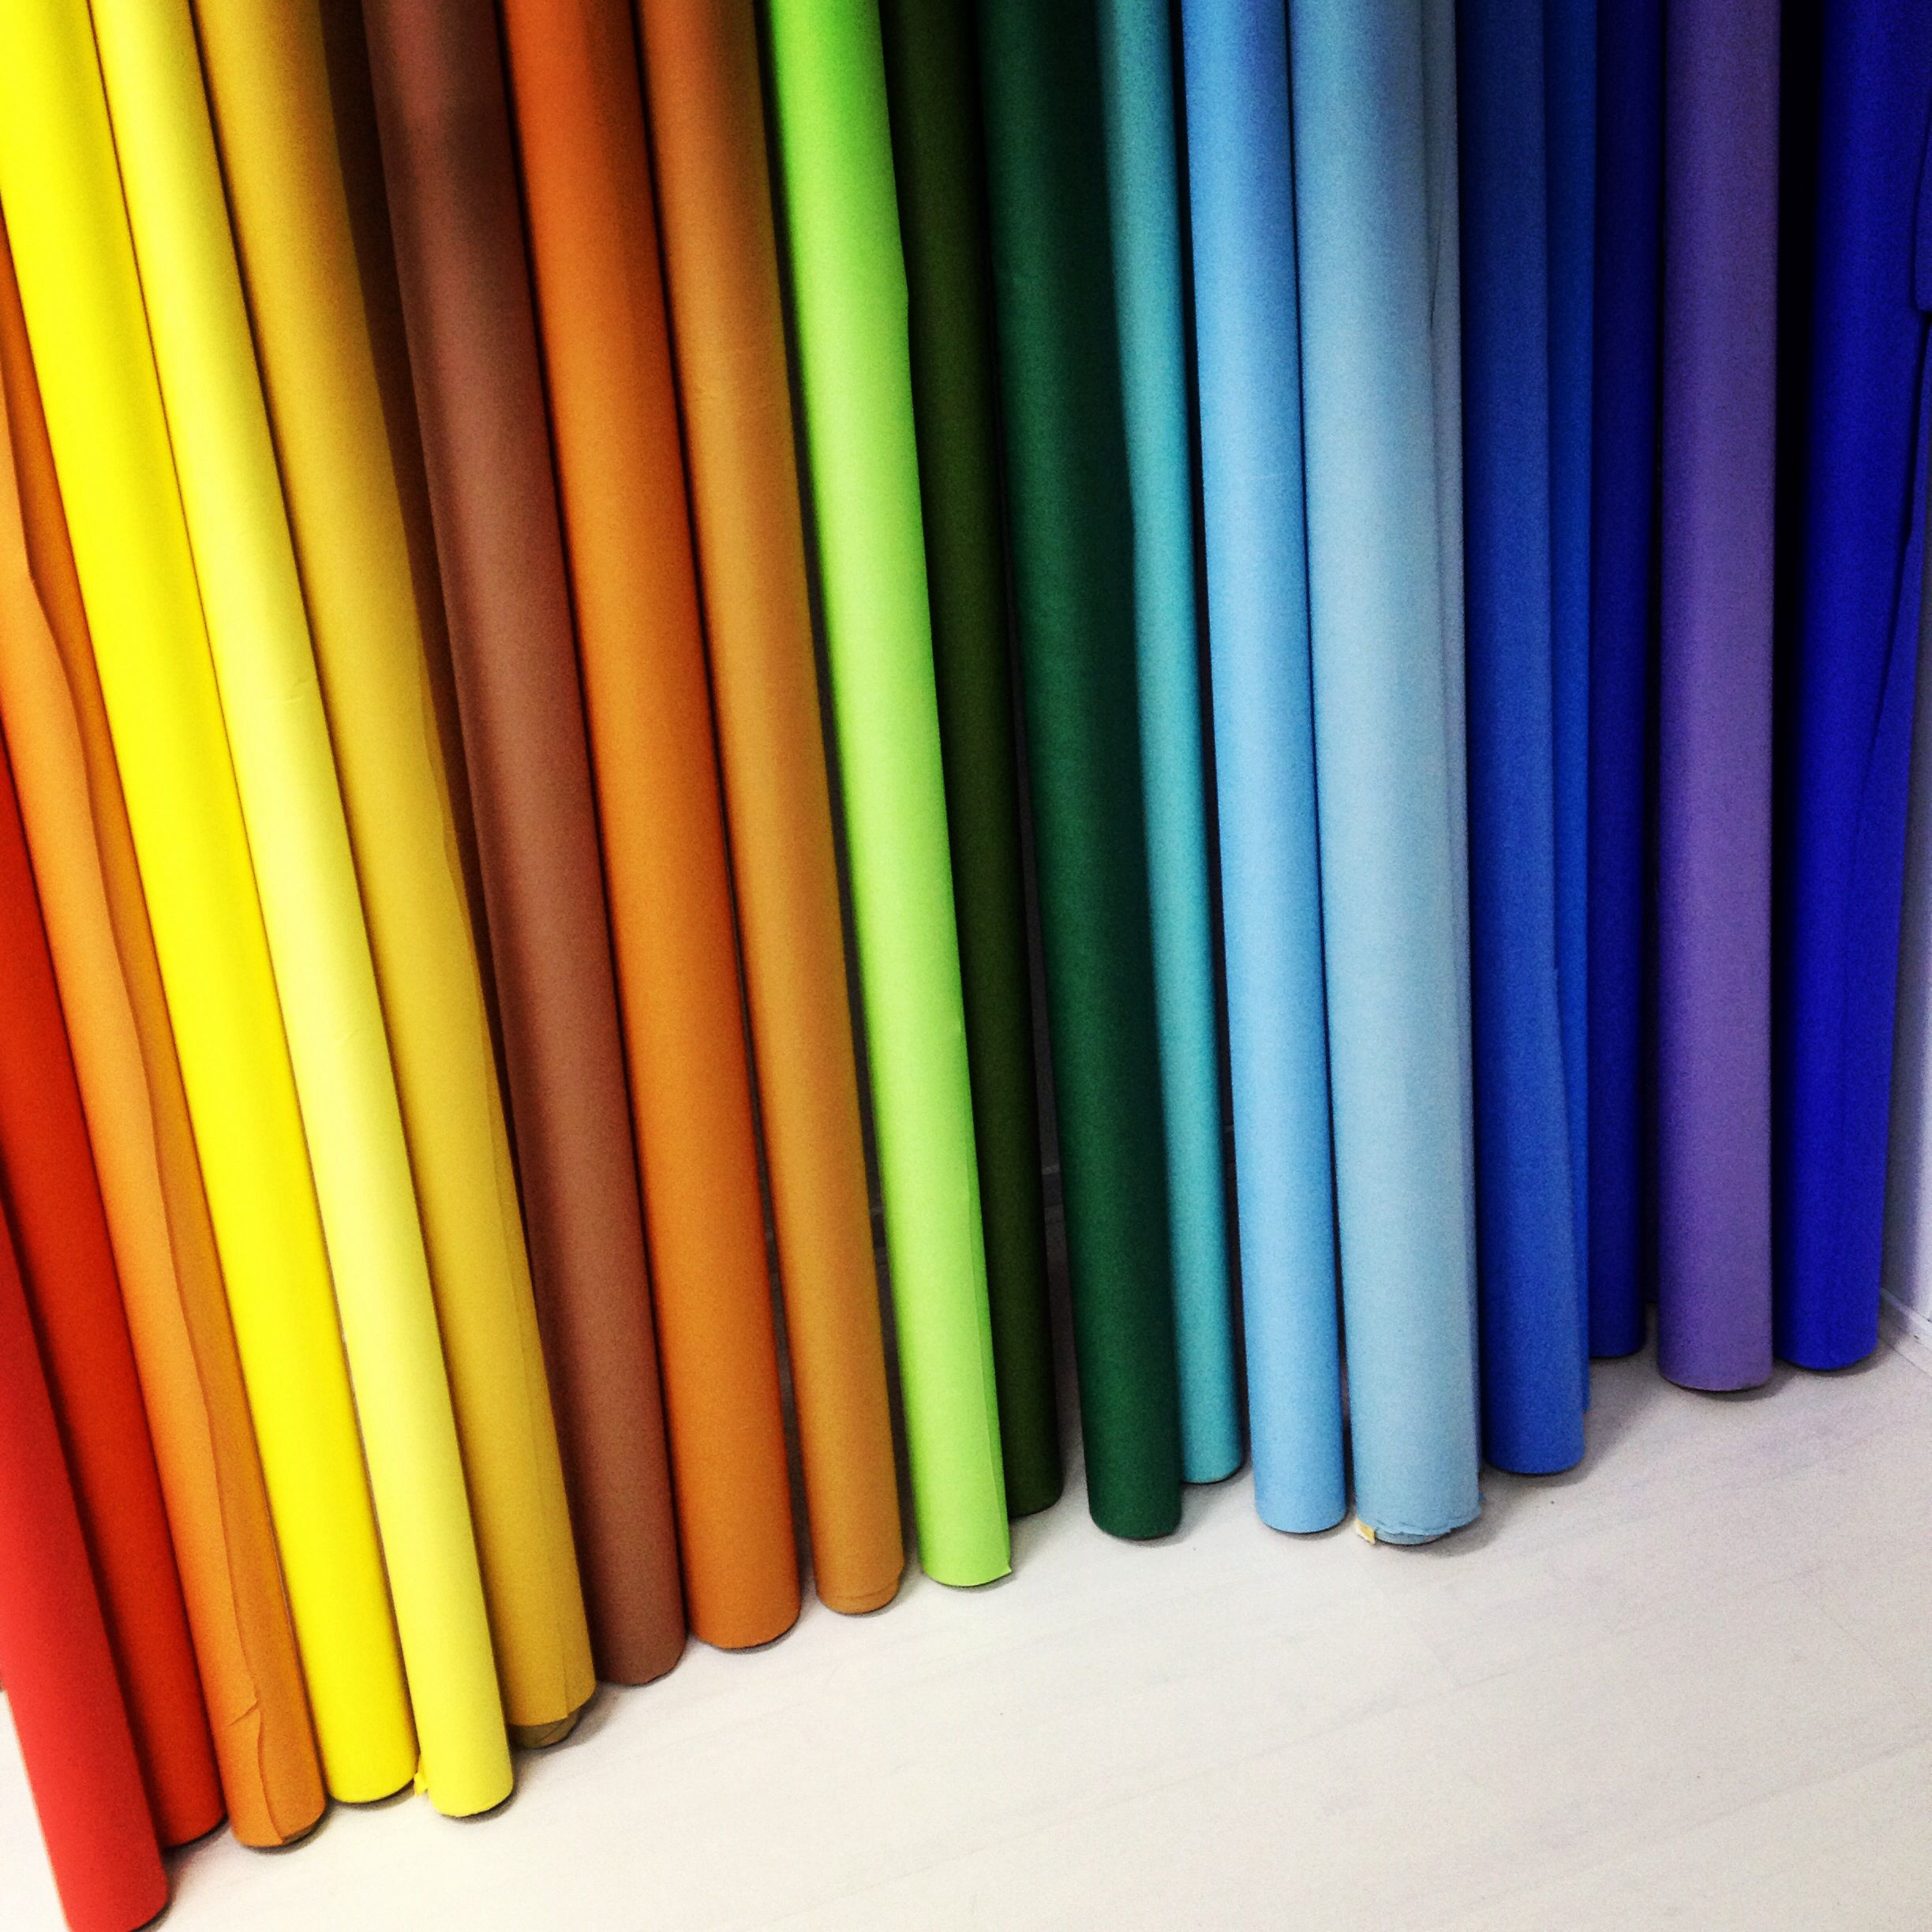 paper rolls in every color of the rainbow. almost 3 feet long